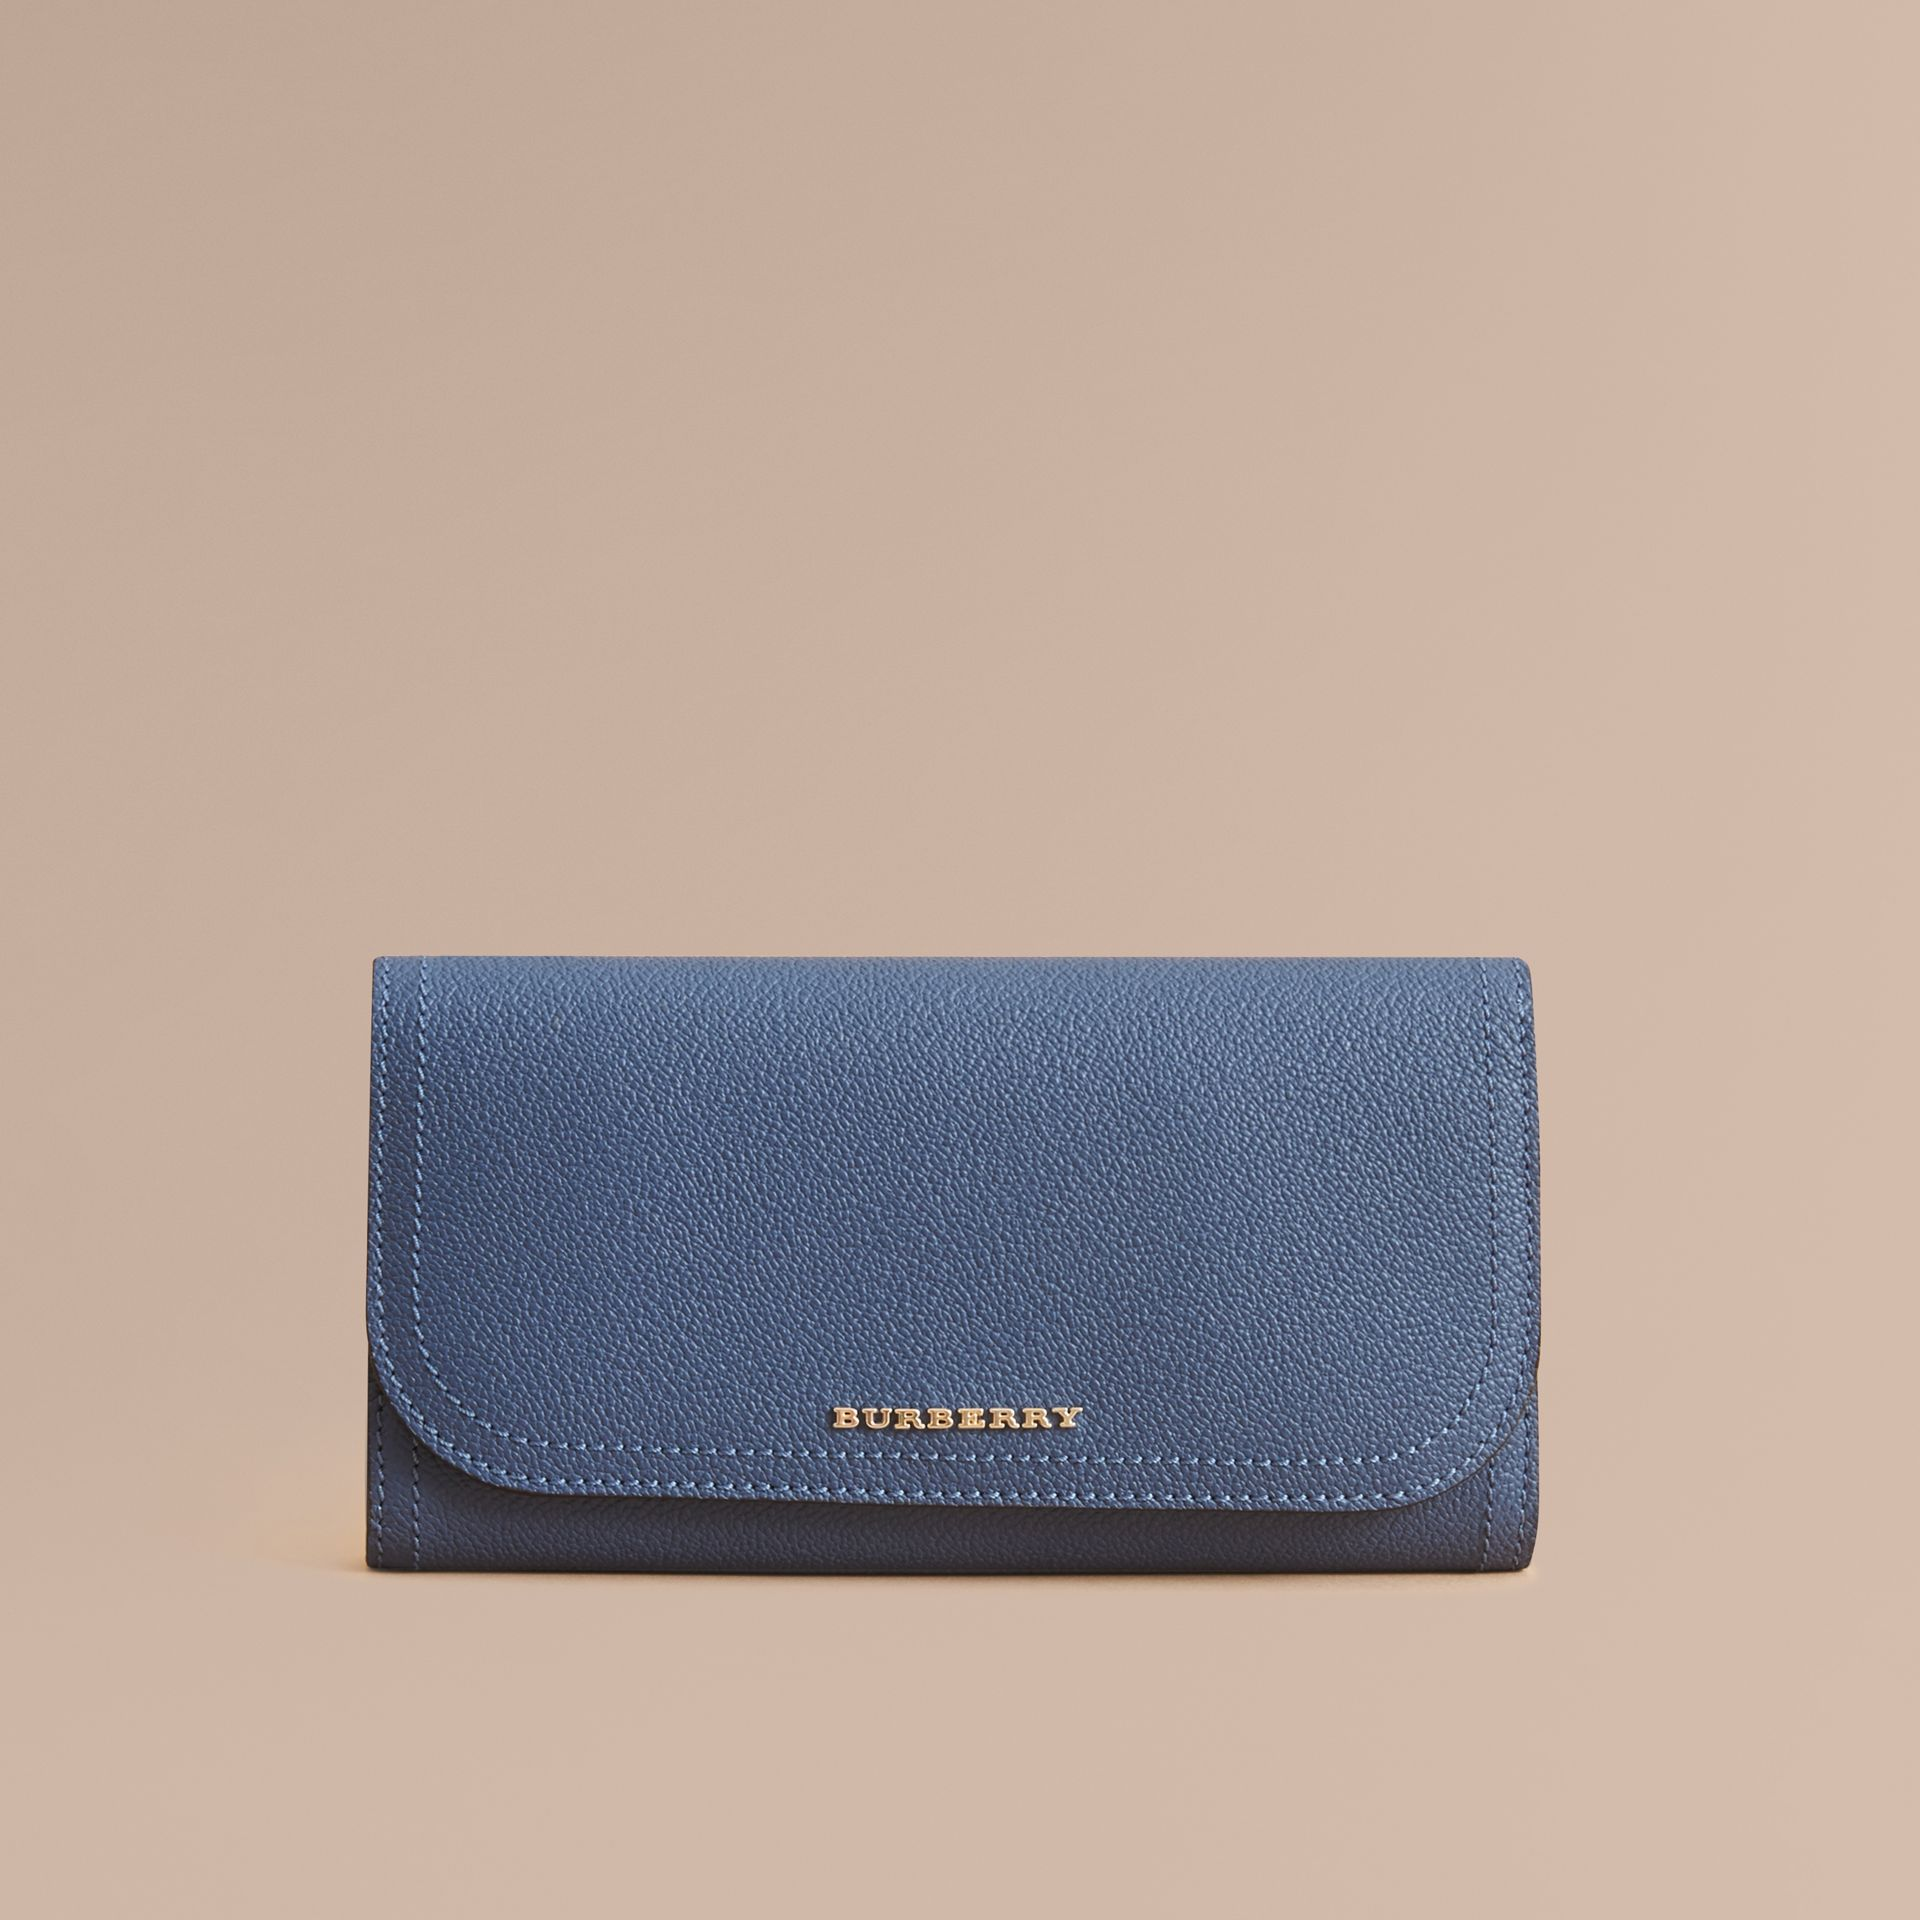 Two-tone Leather Continental Wallet and Coin Case in Steel Blue/multi - Women | Burberry - gallery image 3